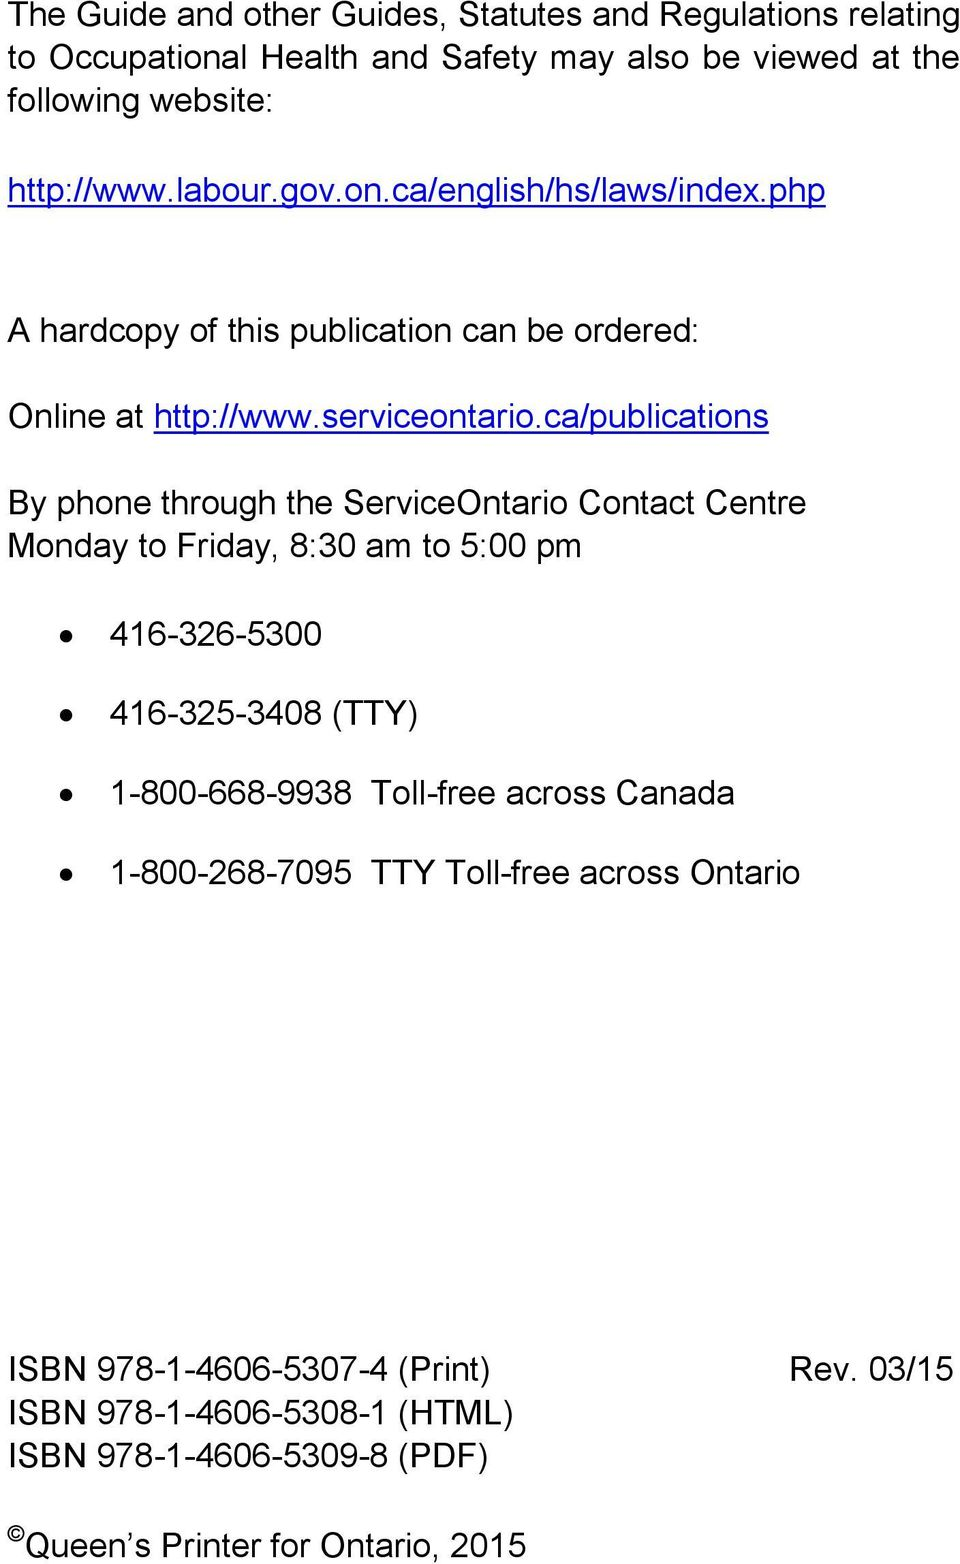 ca/publications By phone through the ServiceOntario Contact Centre Monday to Friday, 8:30 am to 5:00 pm 416-326-5300 416-325-3408 (TTY) 1-800-668-9938